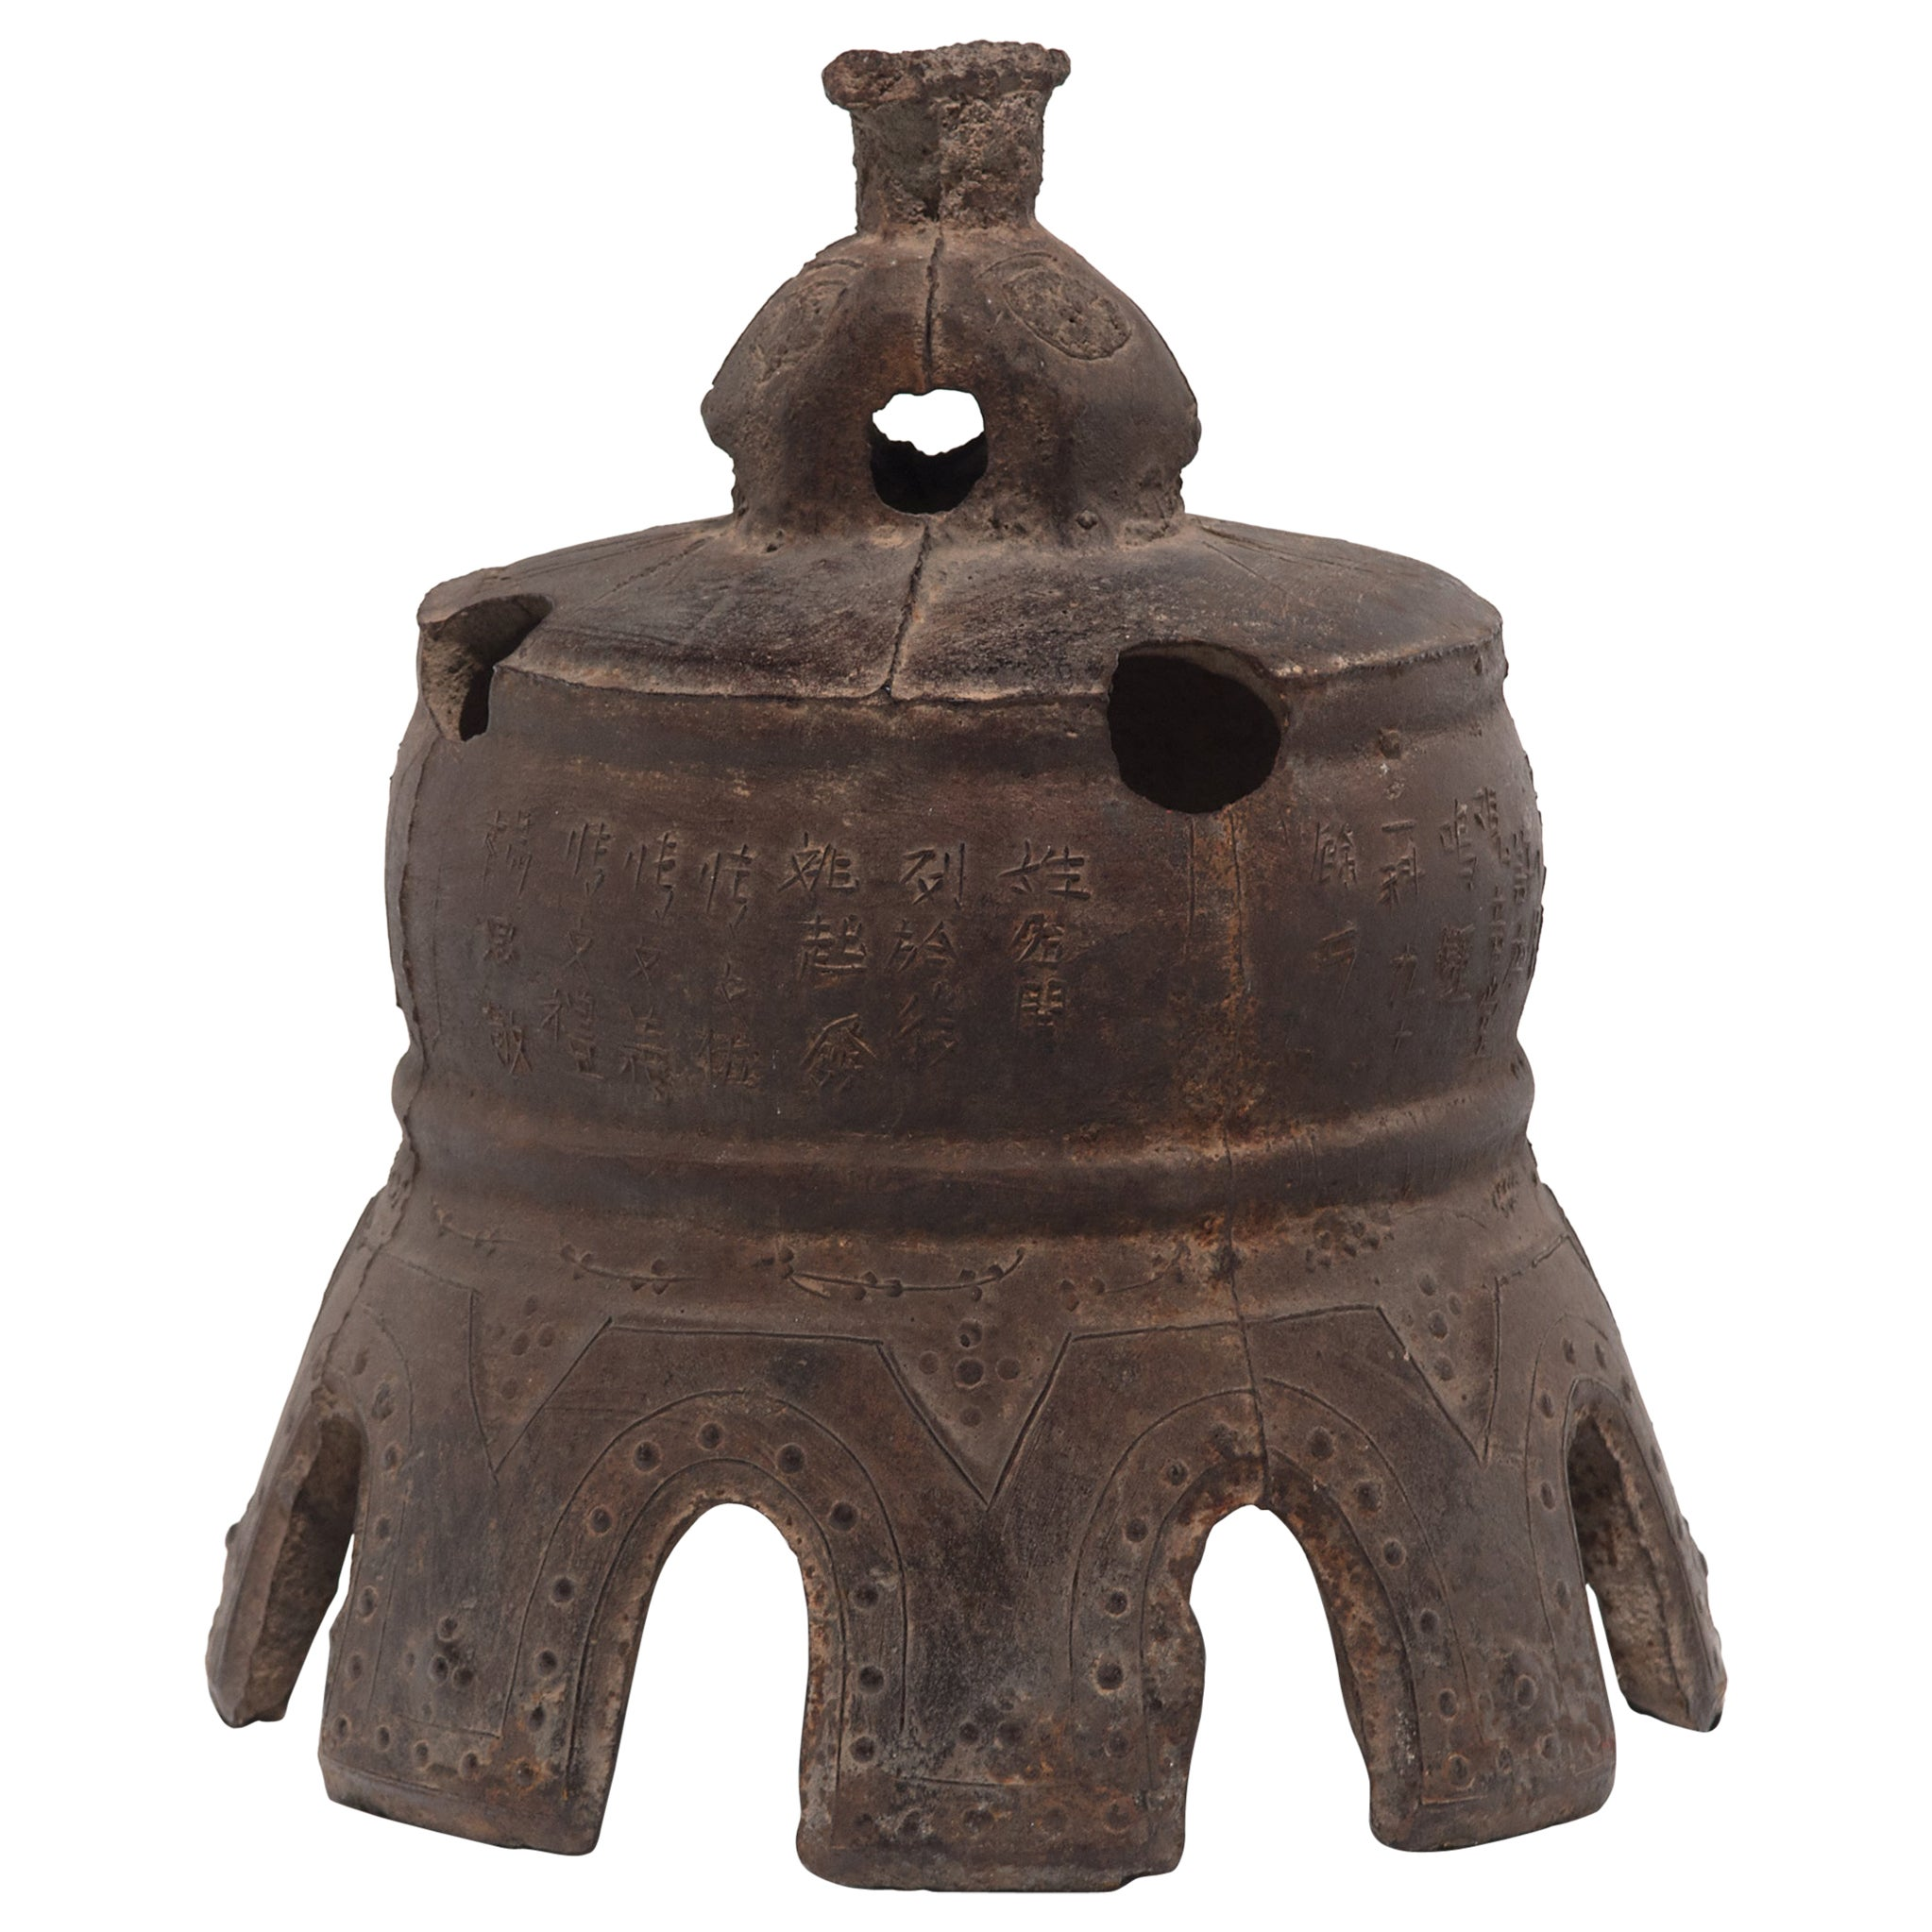 Grand Chinese Qing Dynasty Village Bell, circa 1800